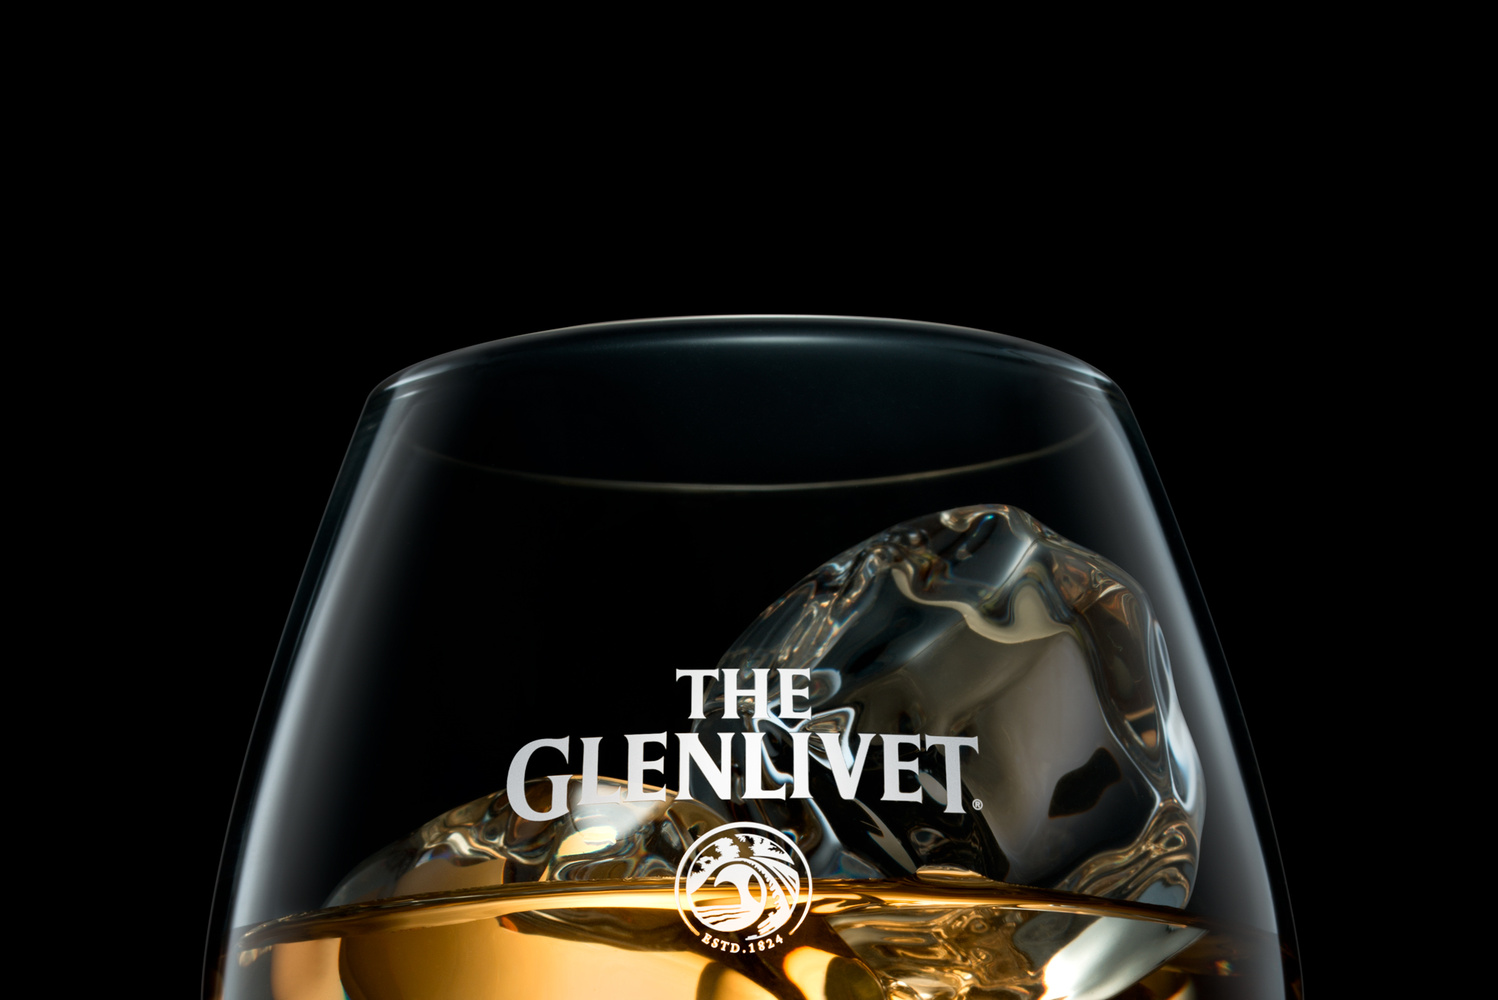 The Glenlivet whisky on the rocks! by Piotr Maksymowicz